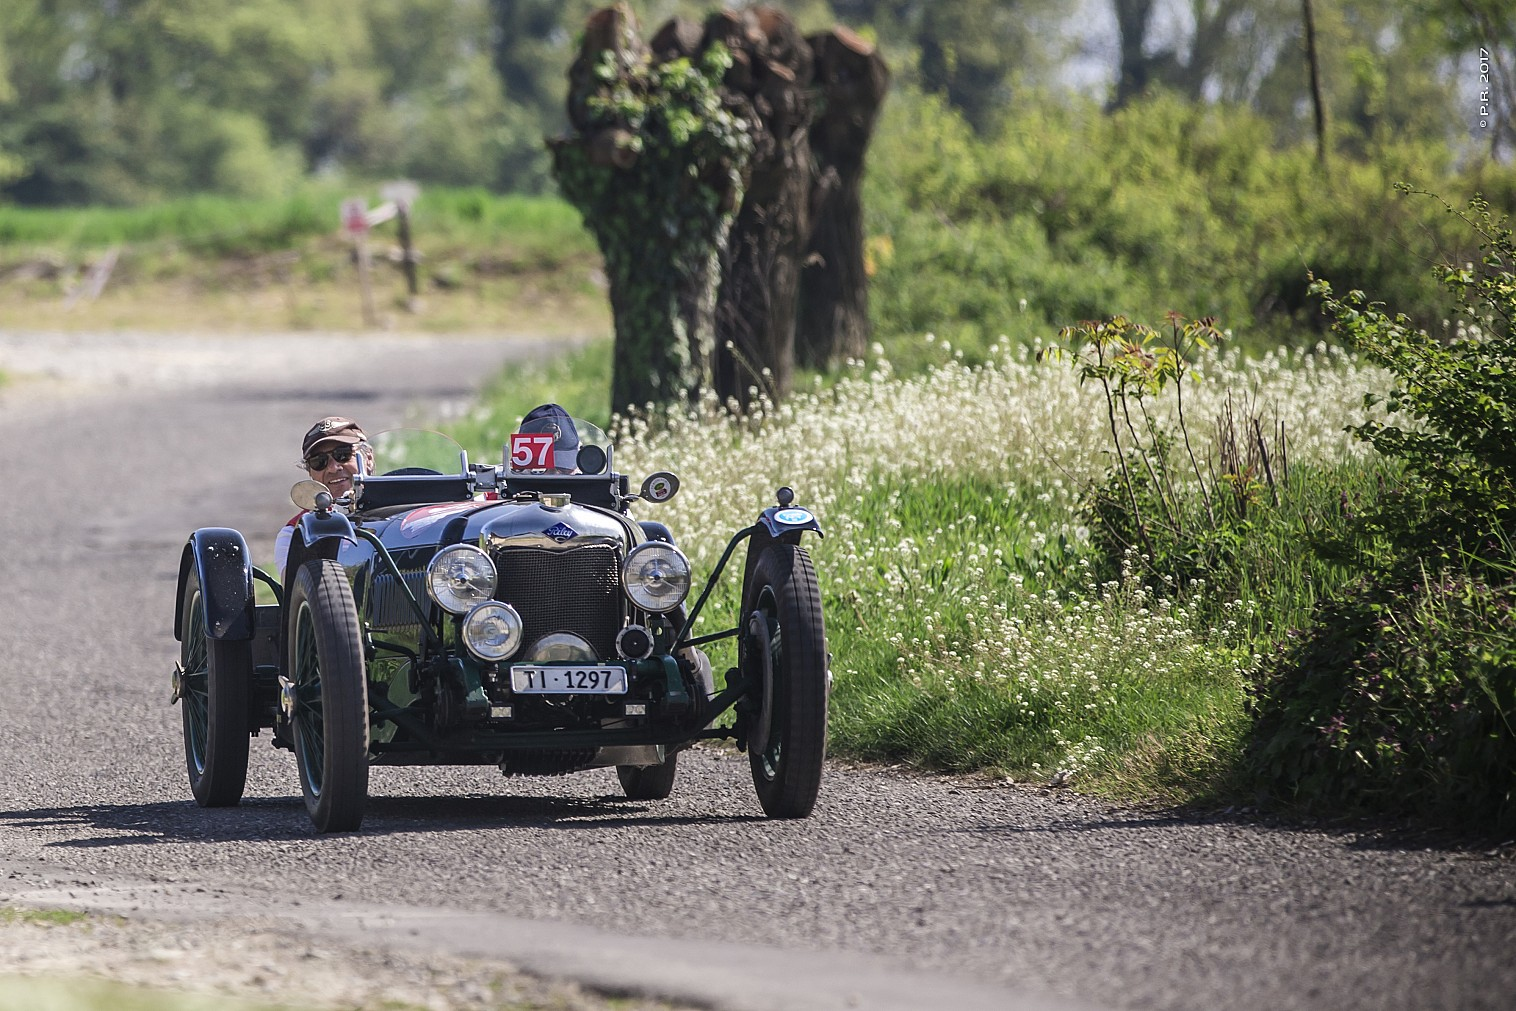 Franciacorta Historic 2018: the 11th edition scheduled for Saturday 7 April